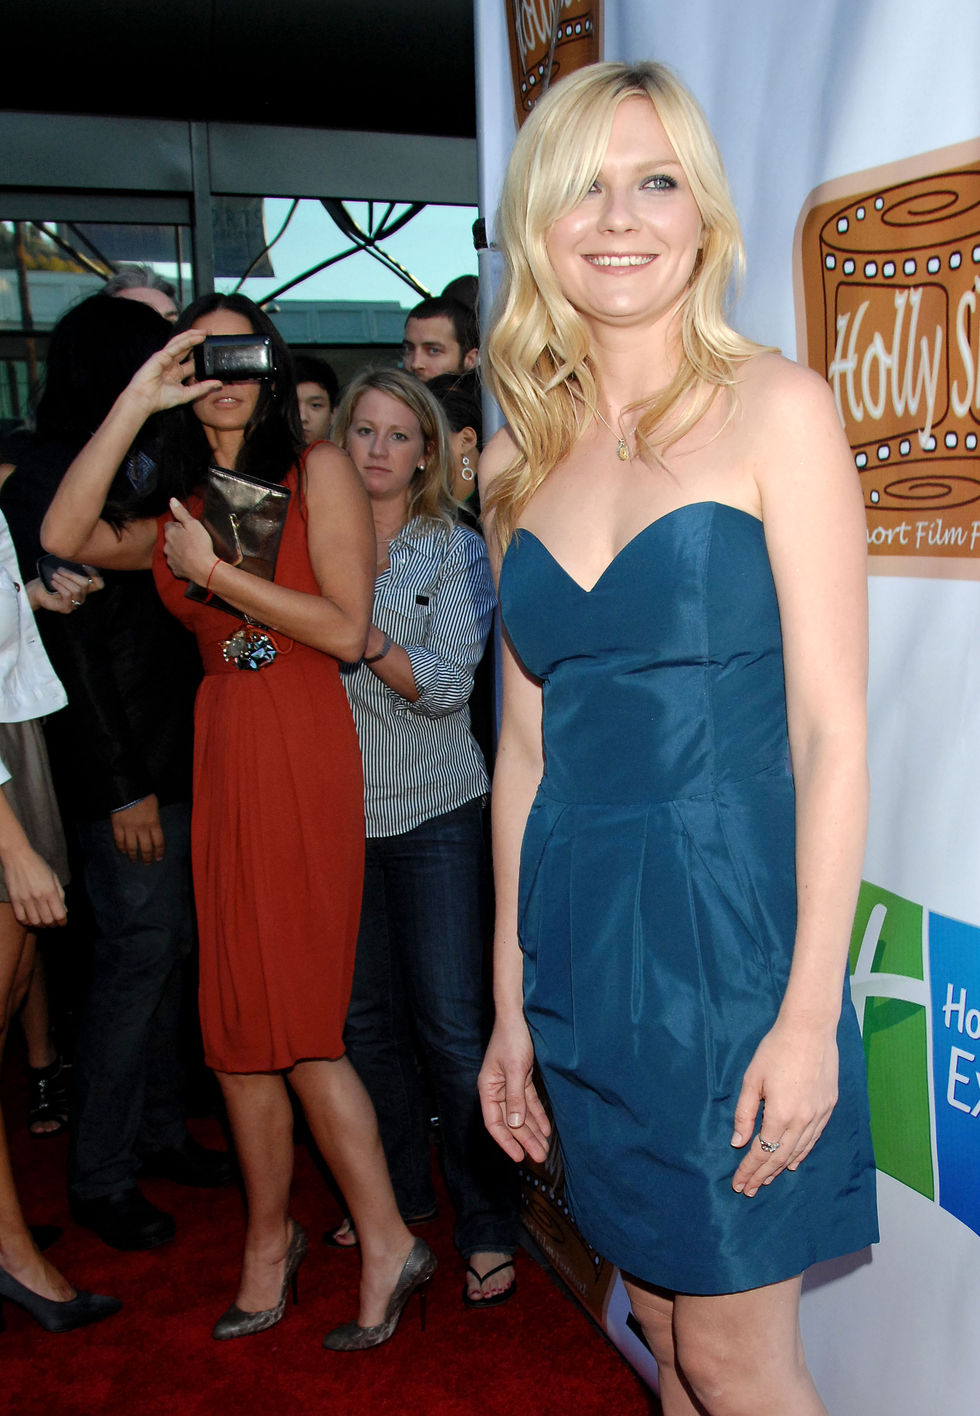 kirsten-dunst-5th-annual-hollyshorts-2009-opening-night-celebration-03